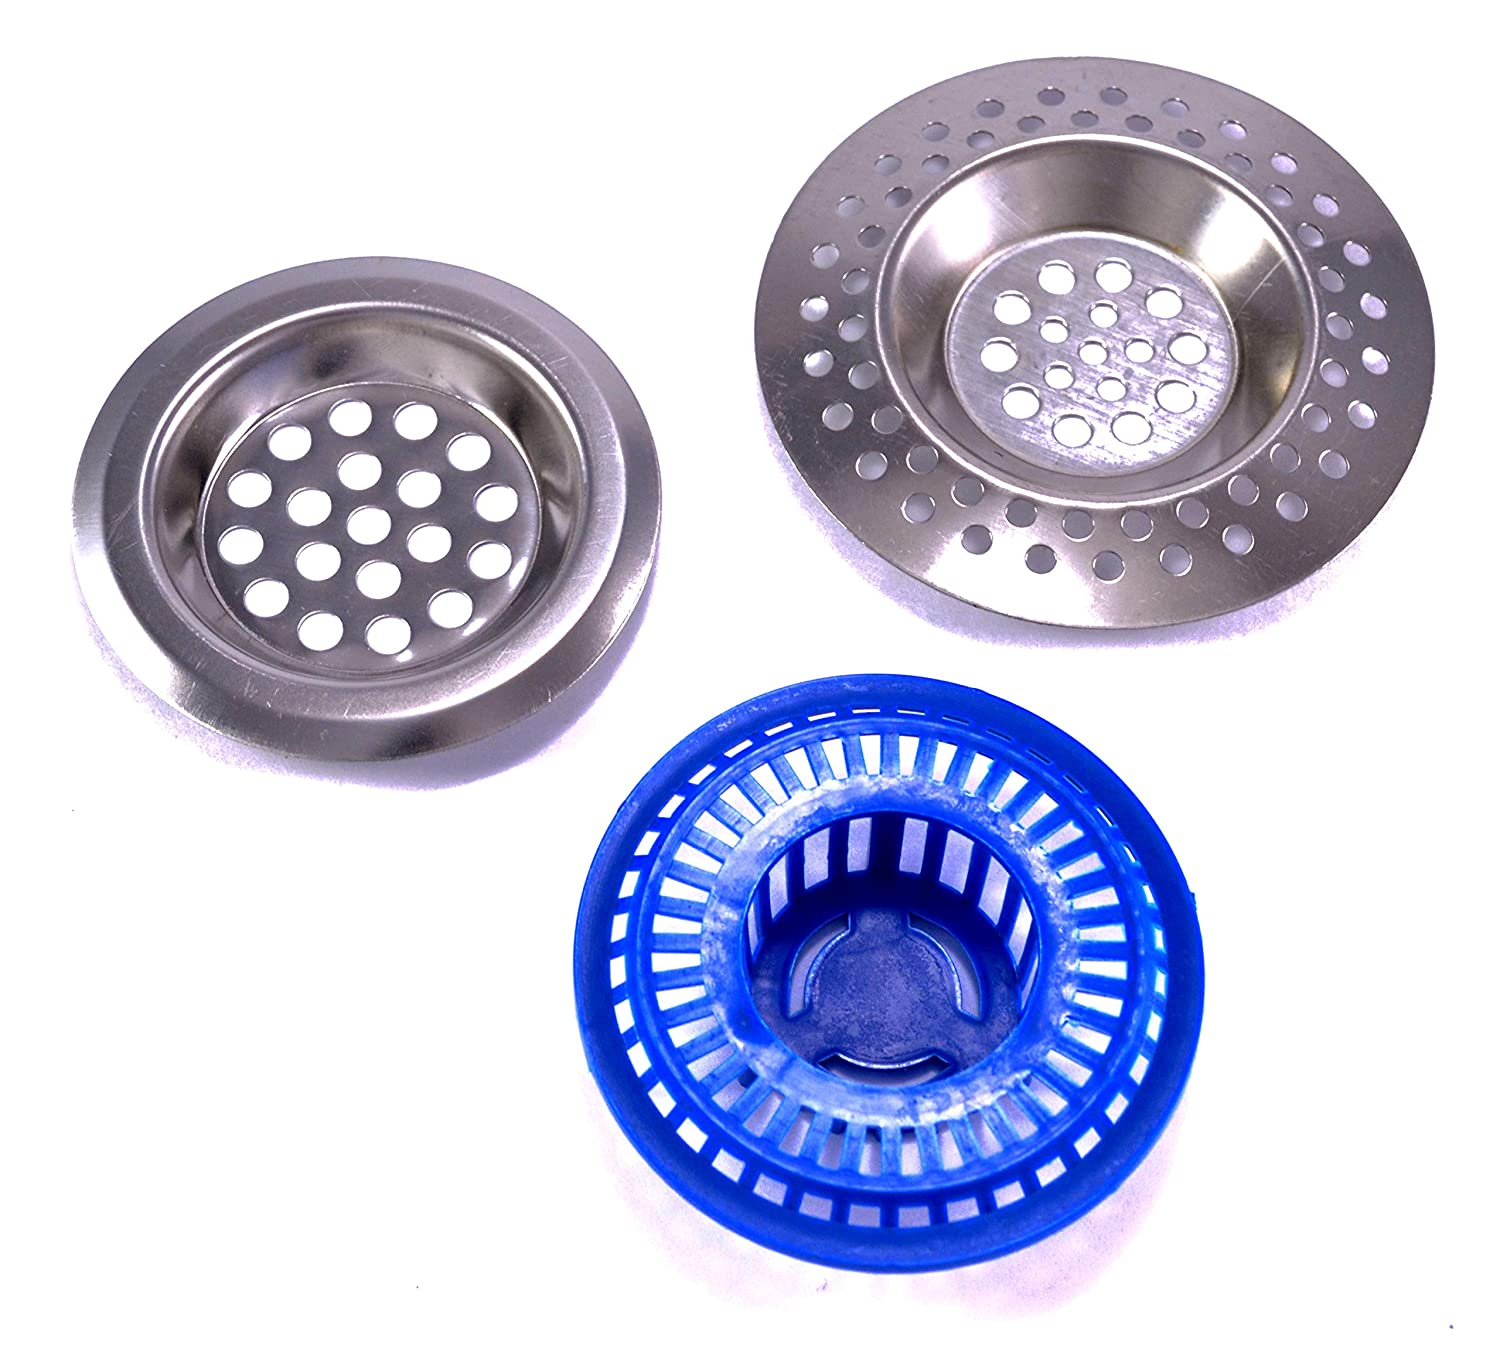 202041 Stainless steel metal sink drain covers 3//2,4